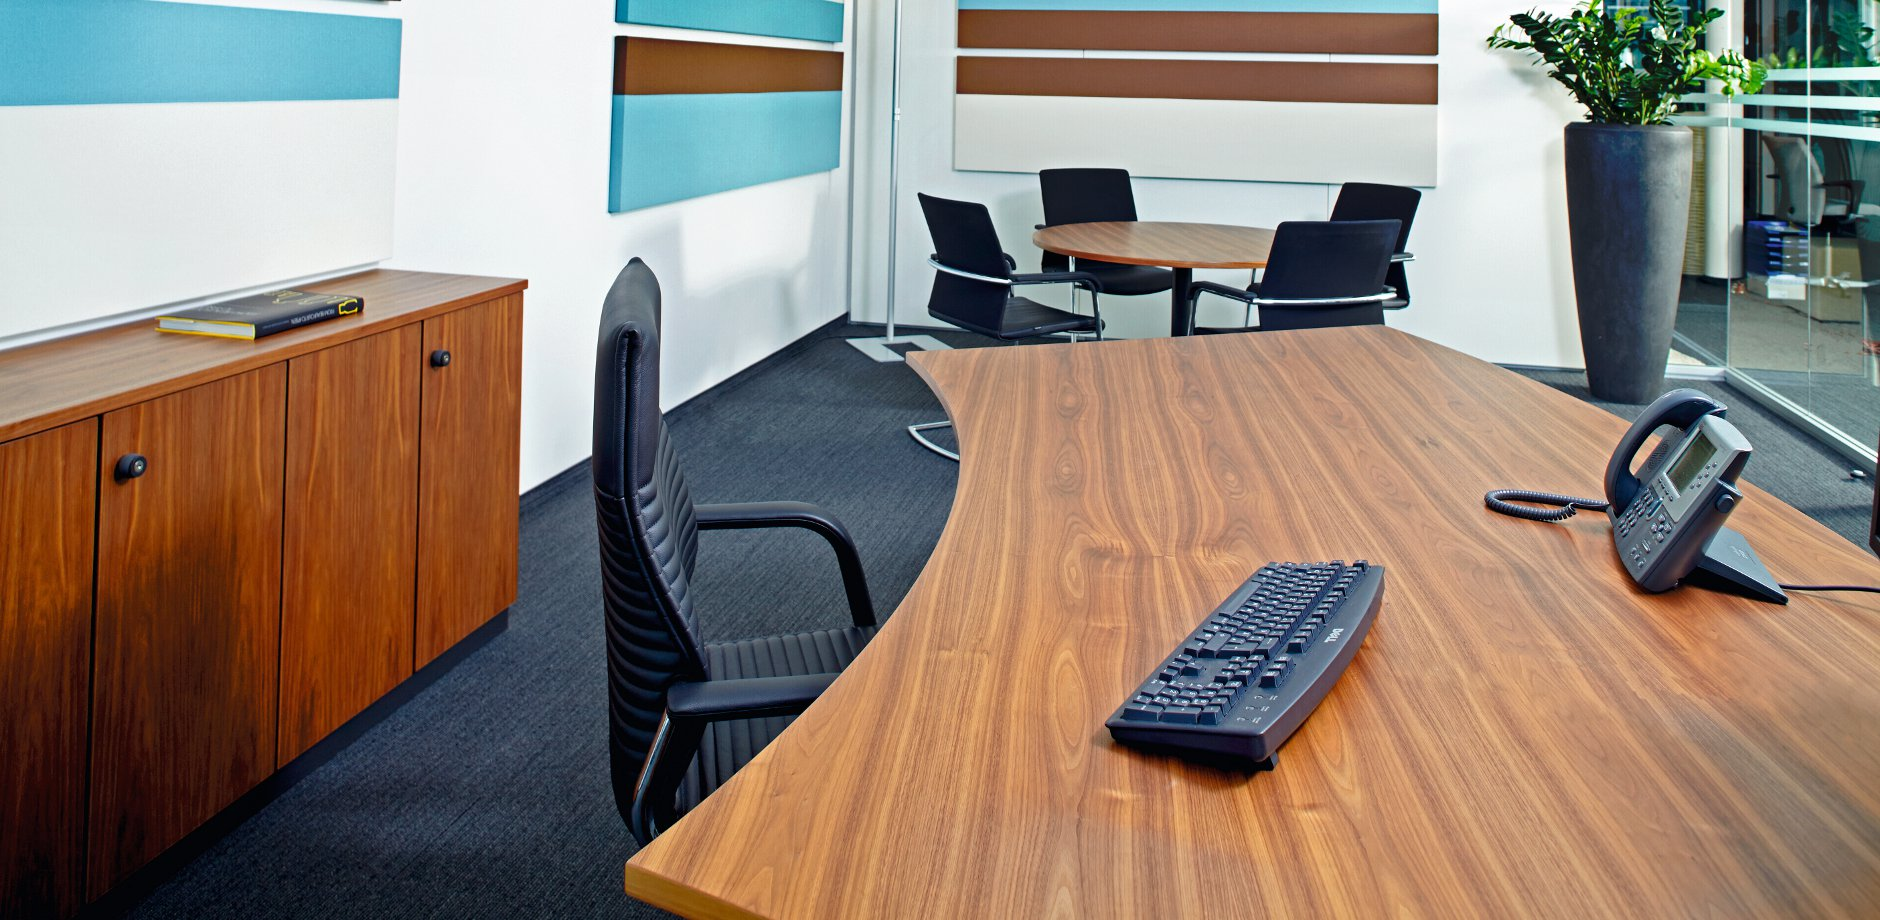 Ipsen Pharma, Germany, ON cantilever chair and FS management office chair by Wilkhahn